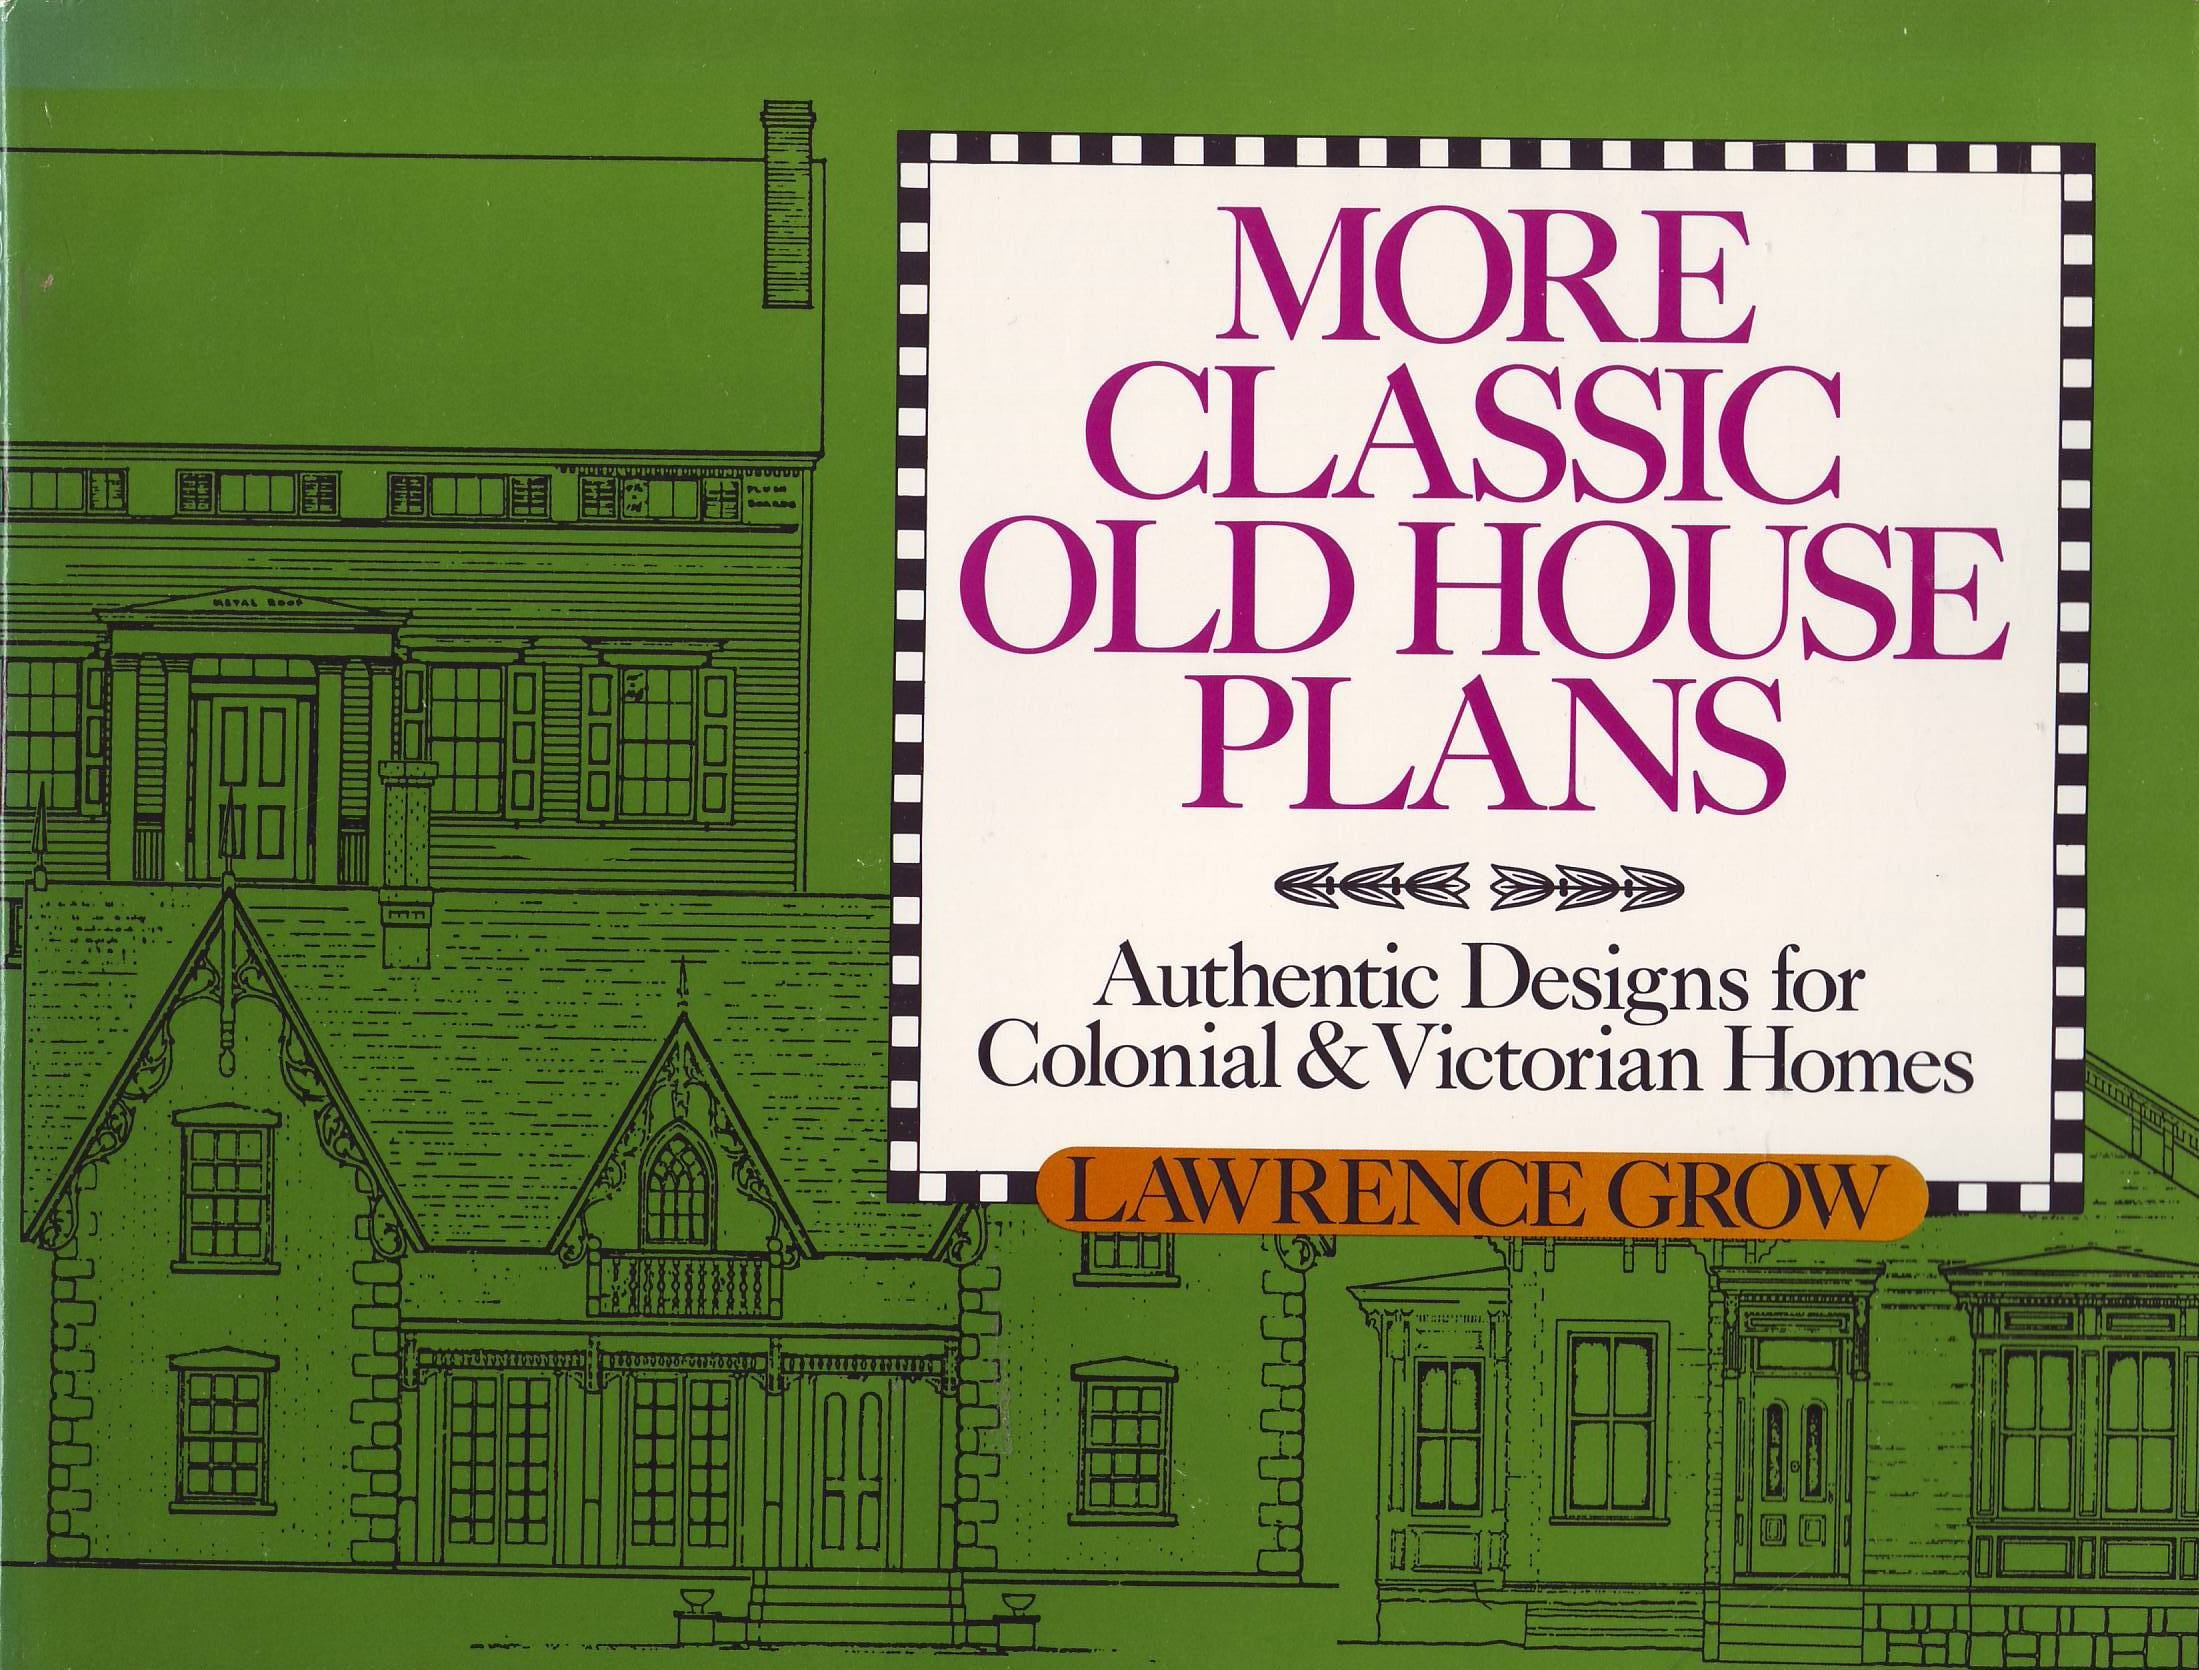 More Classic Old House Plans: Authentic Designs For Colonial And Victorian  Homes (Old House Book): Lawrence Grow: 9780915590865: Amazon.com: Books